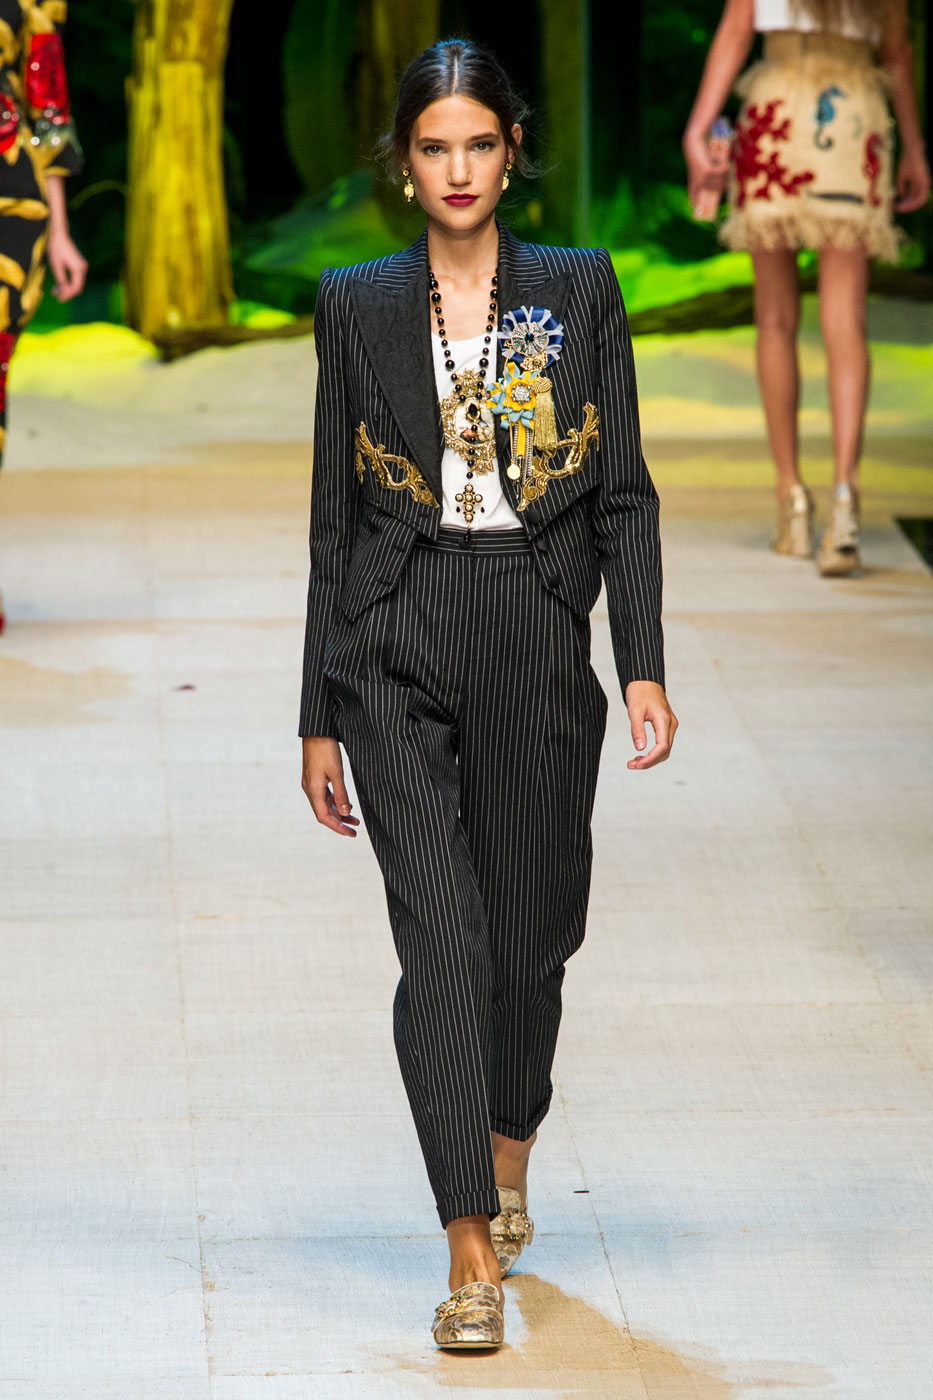 Dolce & Gabbana Spring/Summer 2017 Looks to Italian DNA for Inspiration